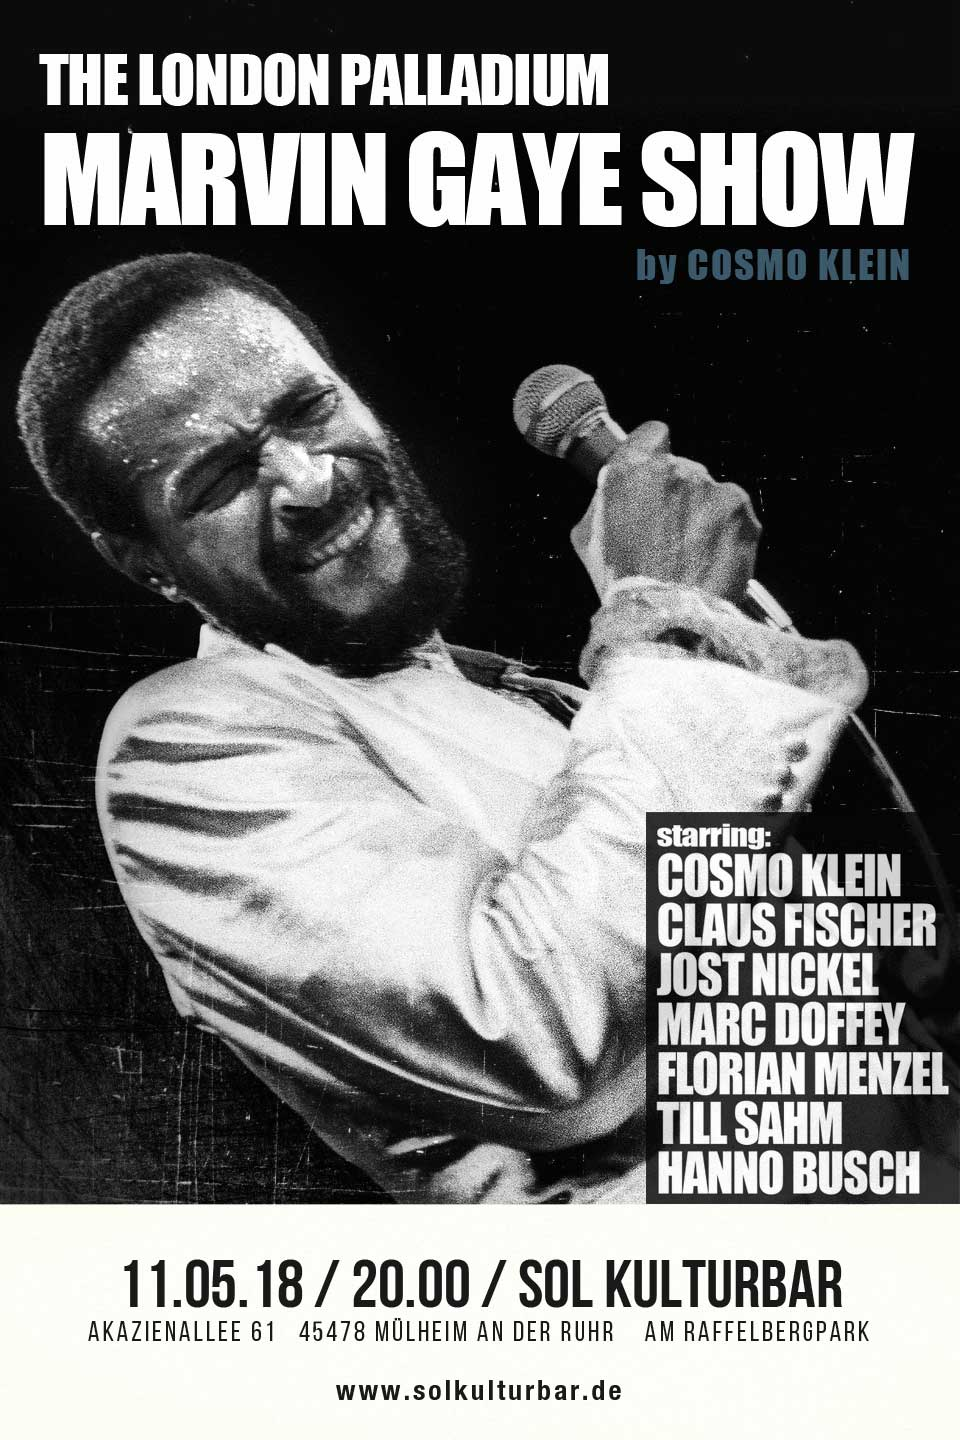 Mai 2018 Cosmo Klein presents The London Palldium Marvin Gaye Show